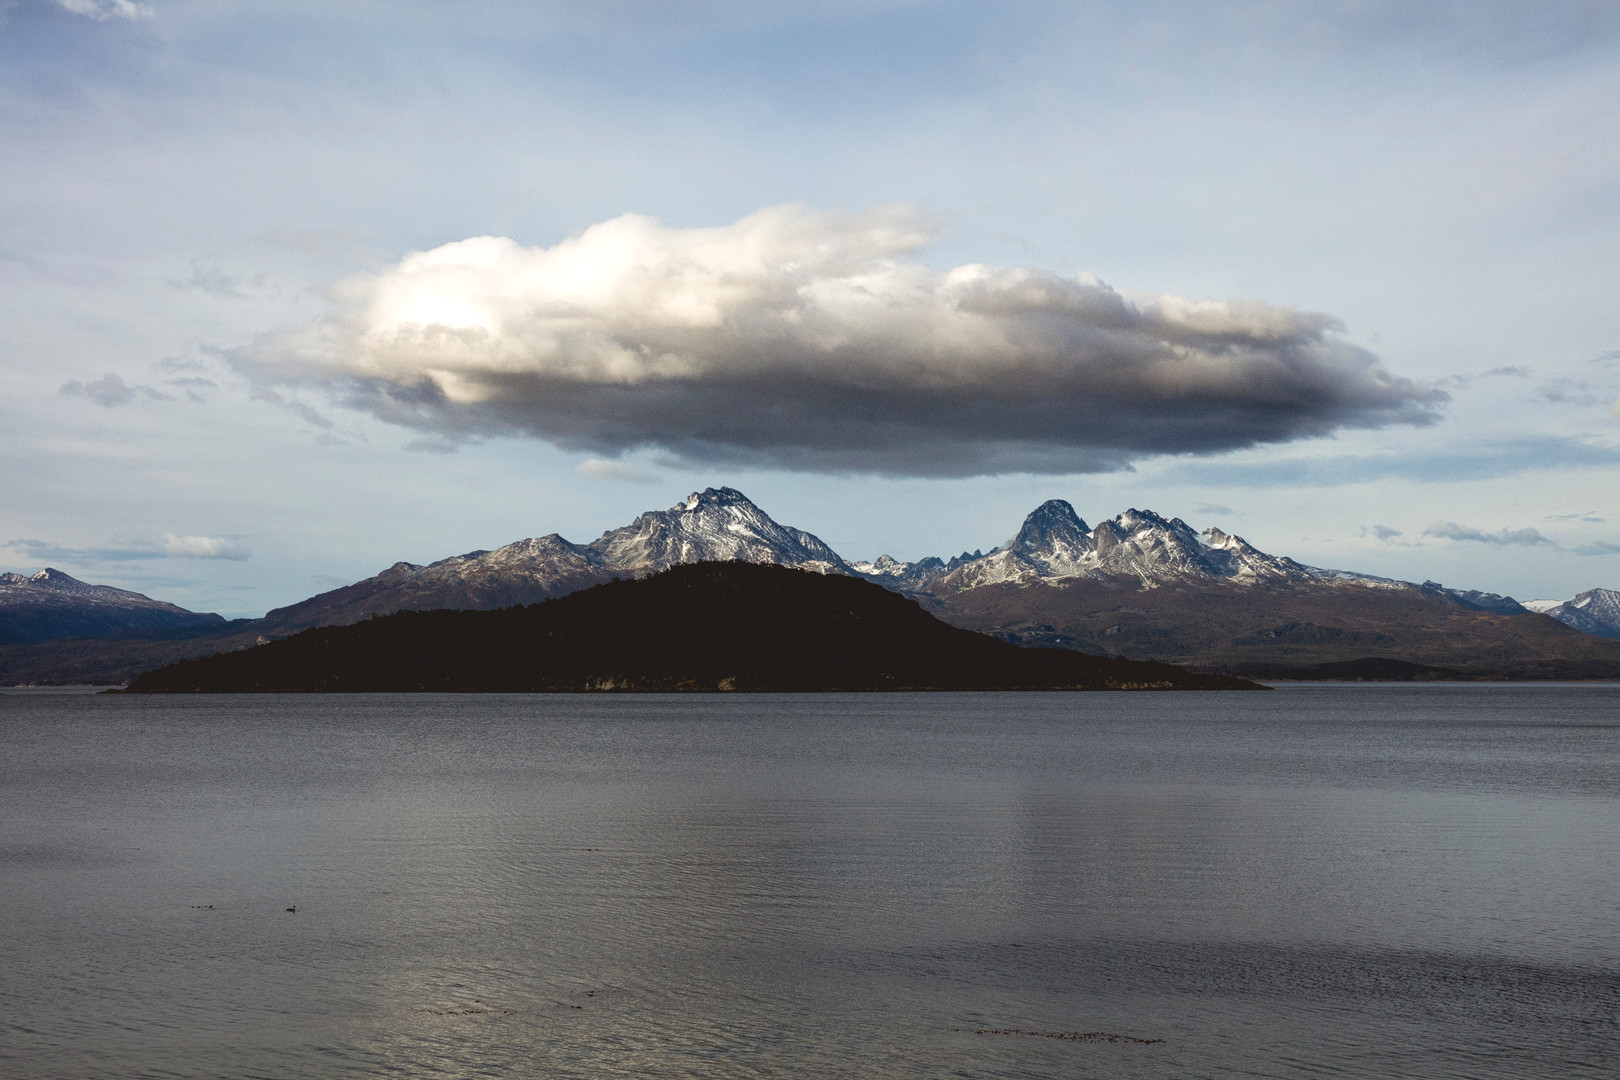 A cloud is standig over two peaks, Parque National Tierra del Fuego, Ushuaia, Argentina, April 2016